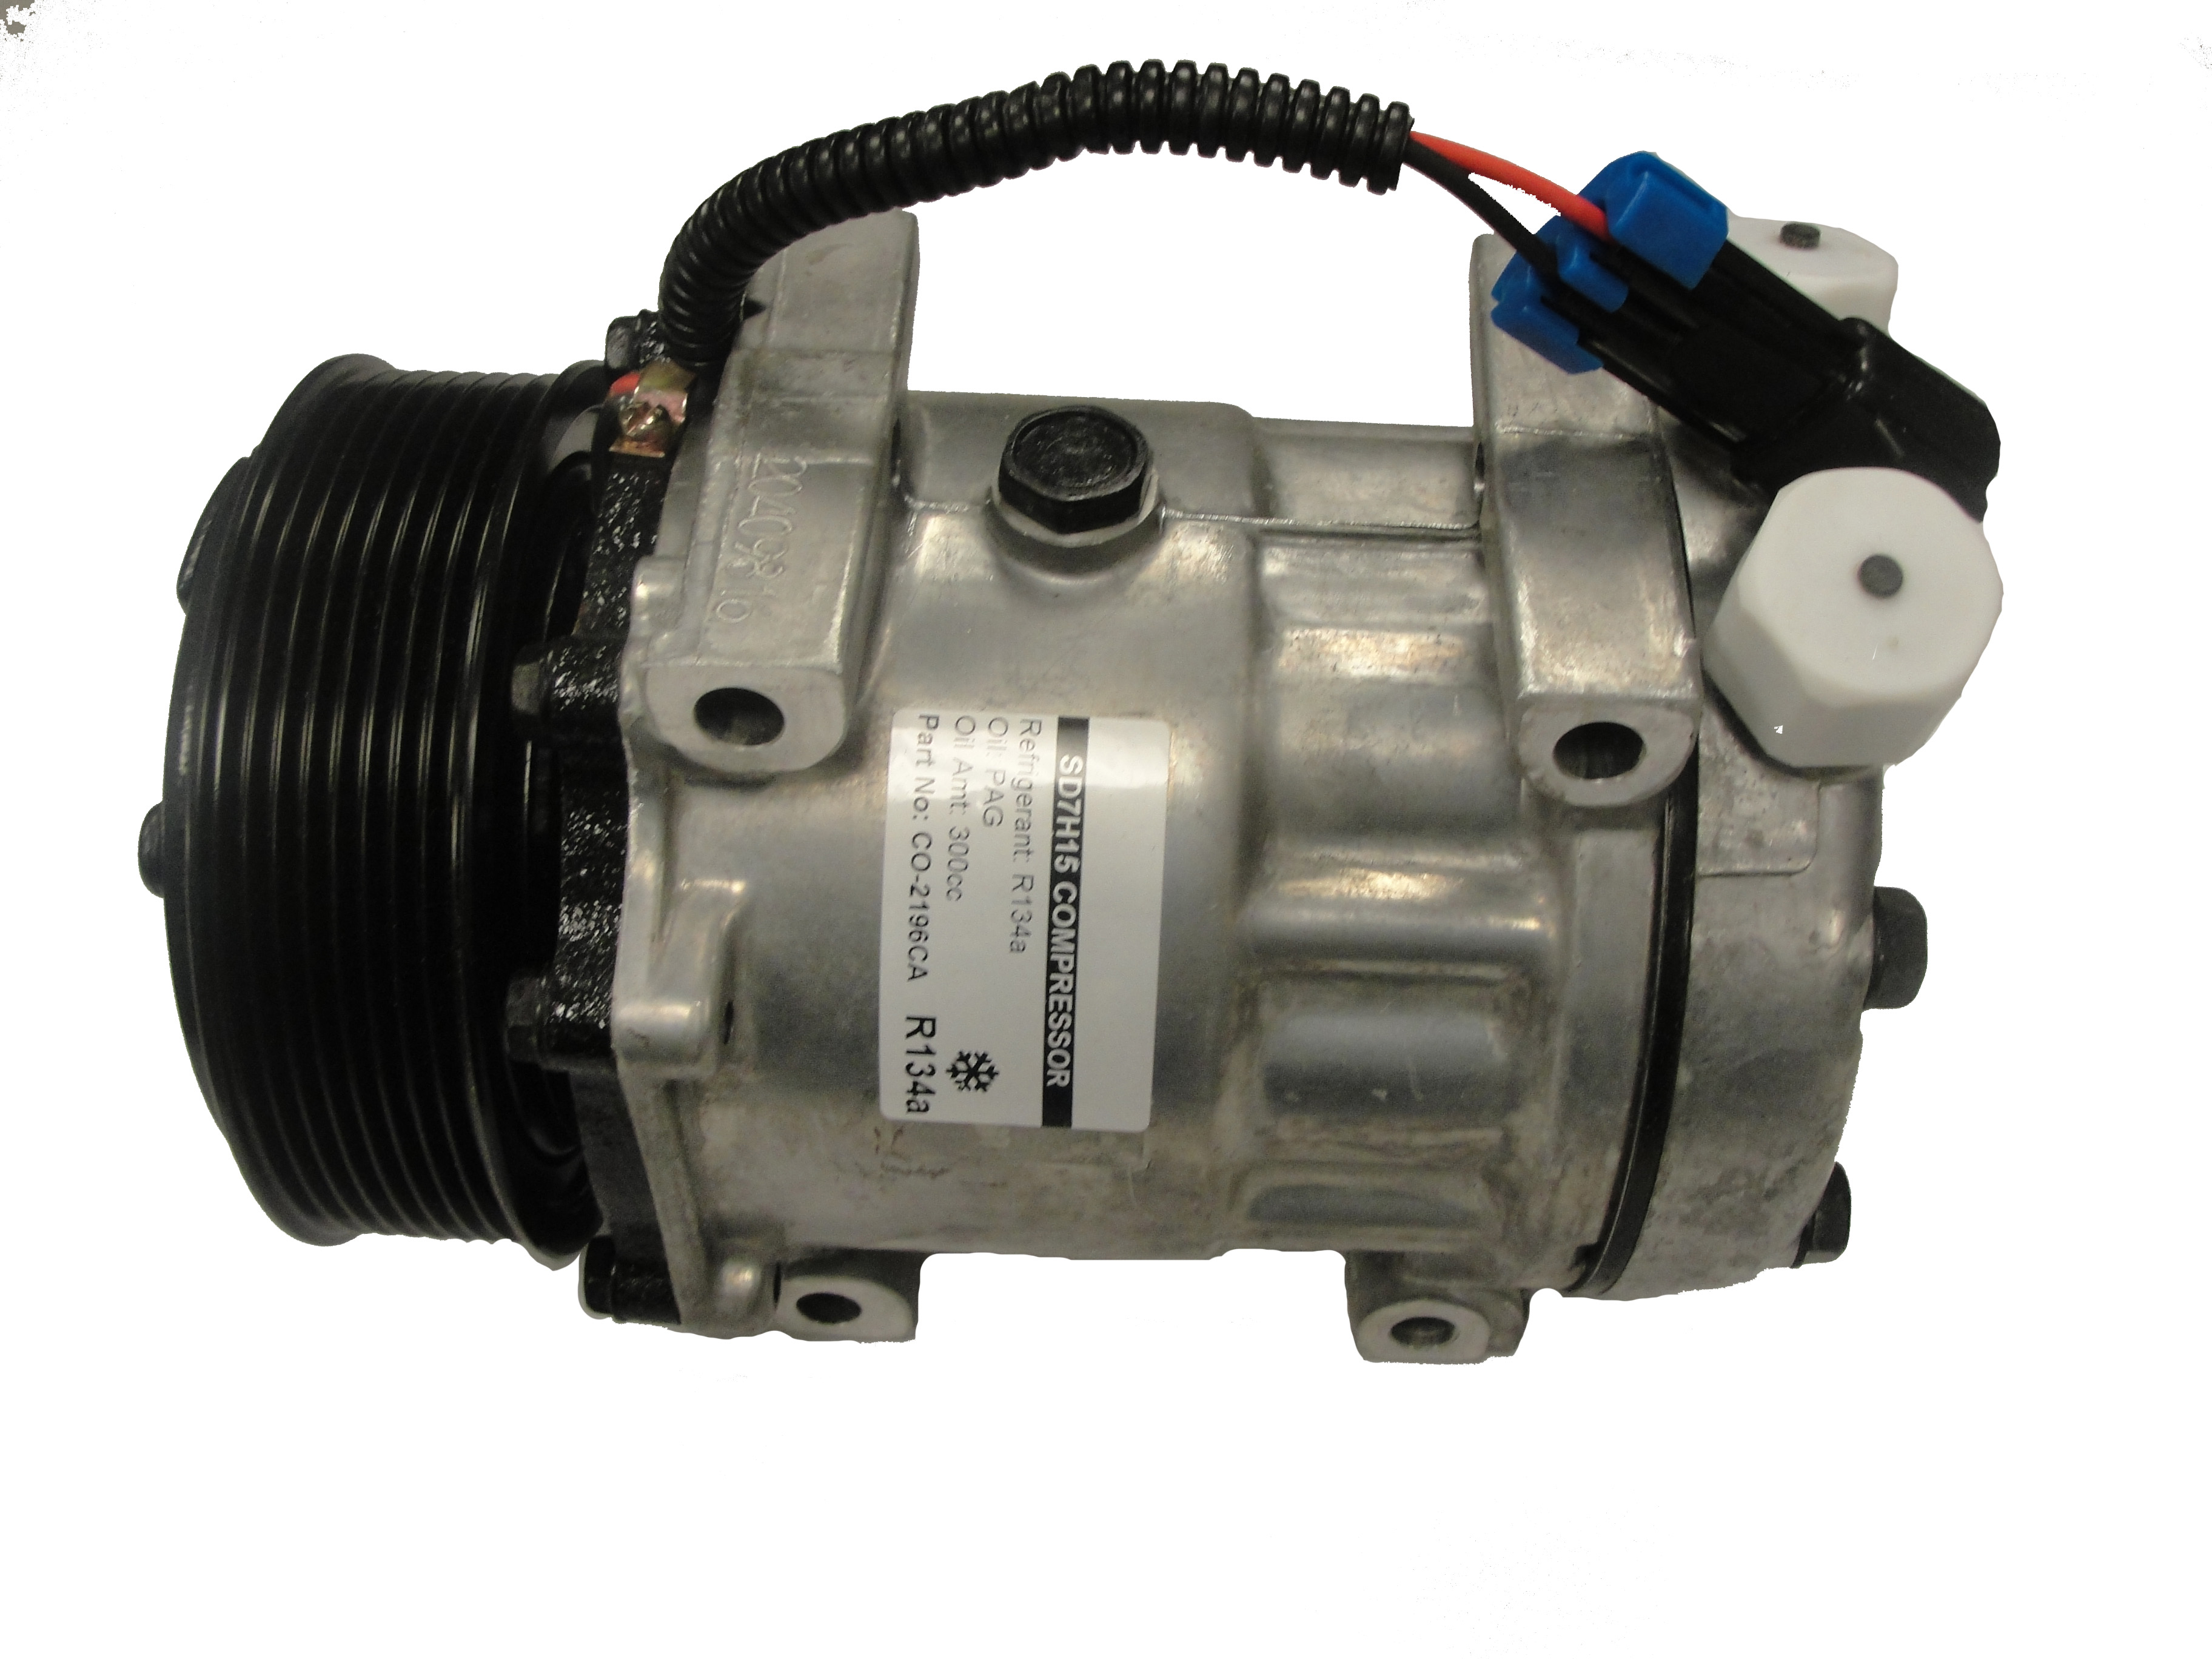 International Harvester Compressor Diameter: 4 3/4